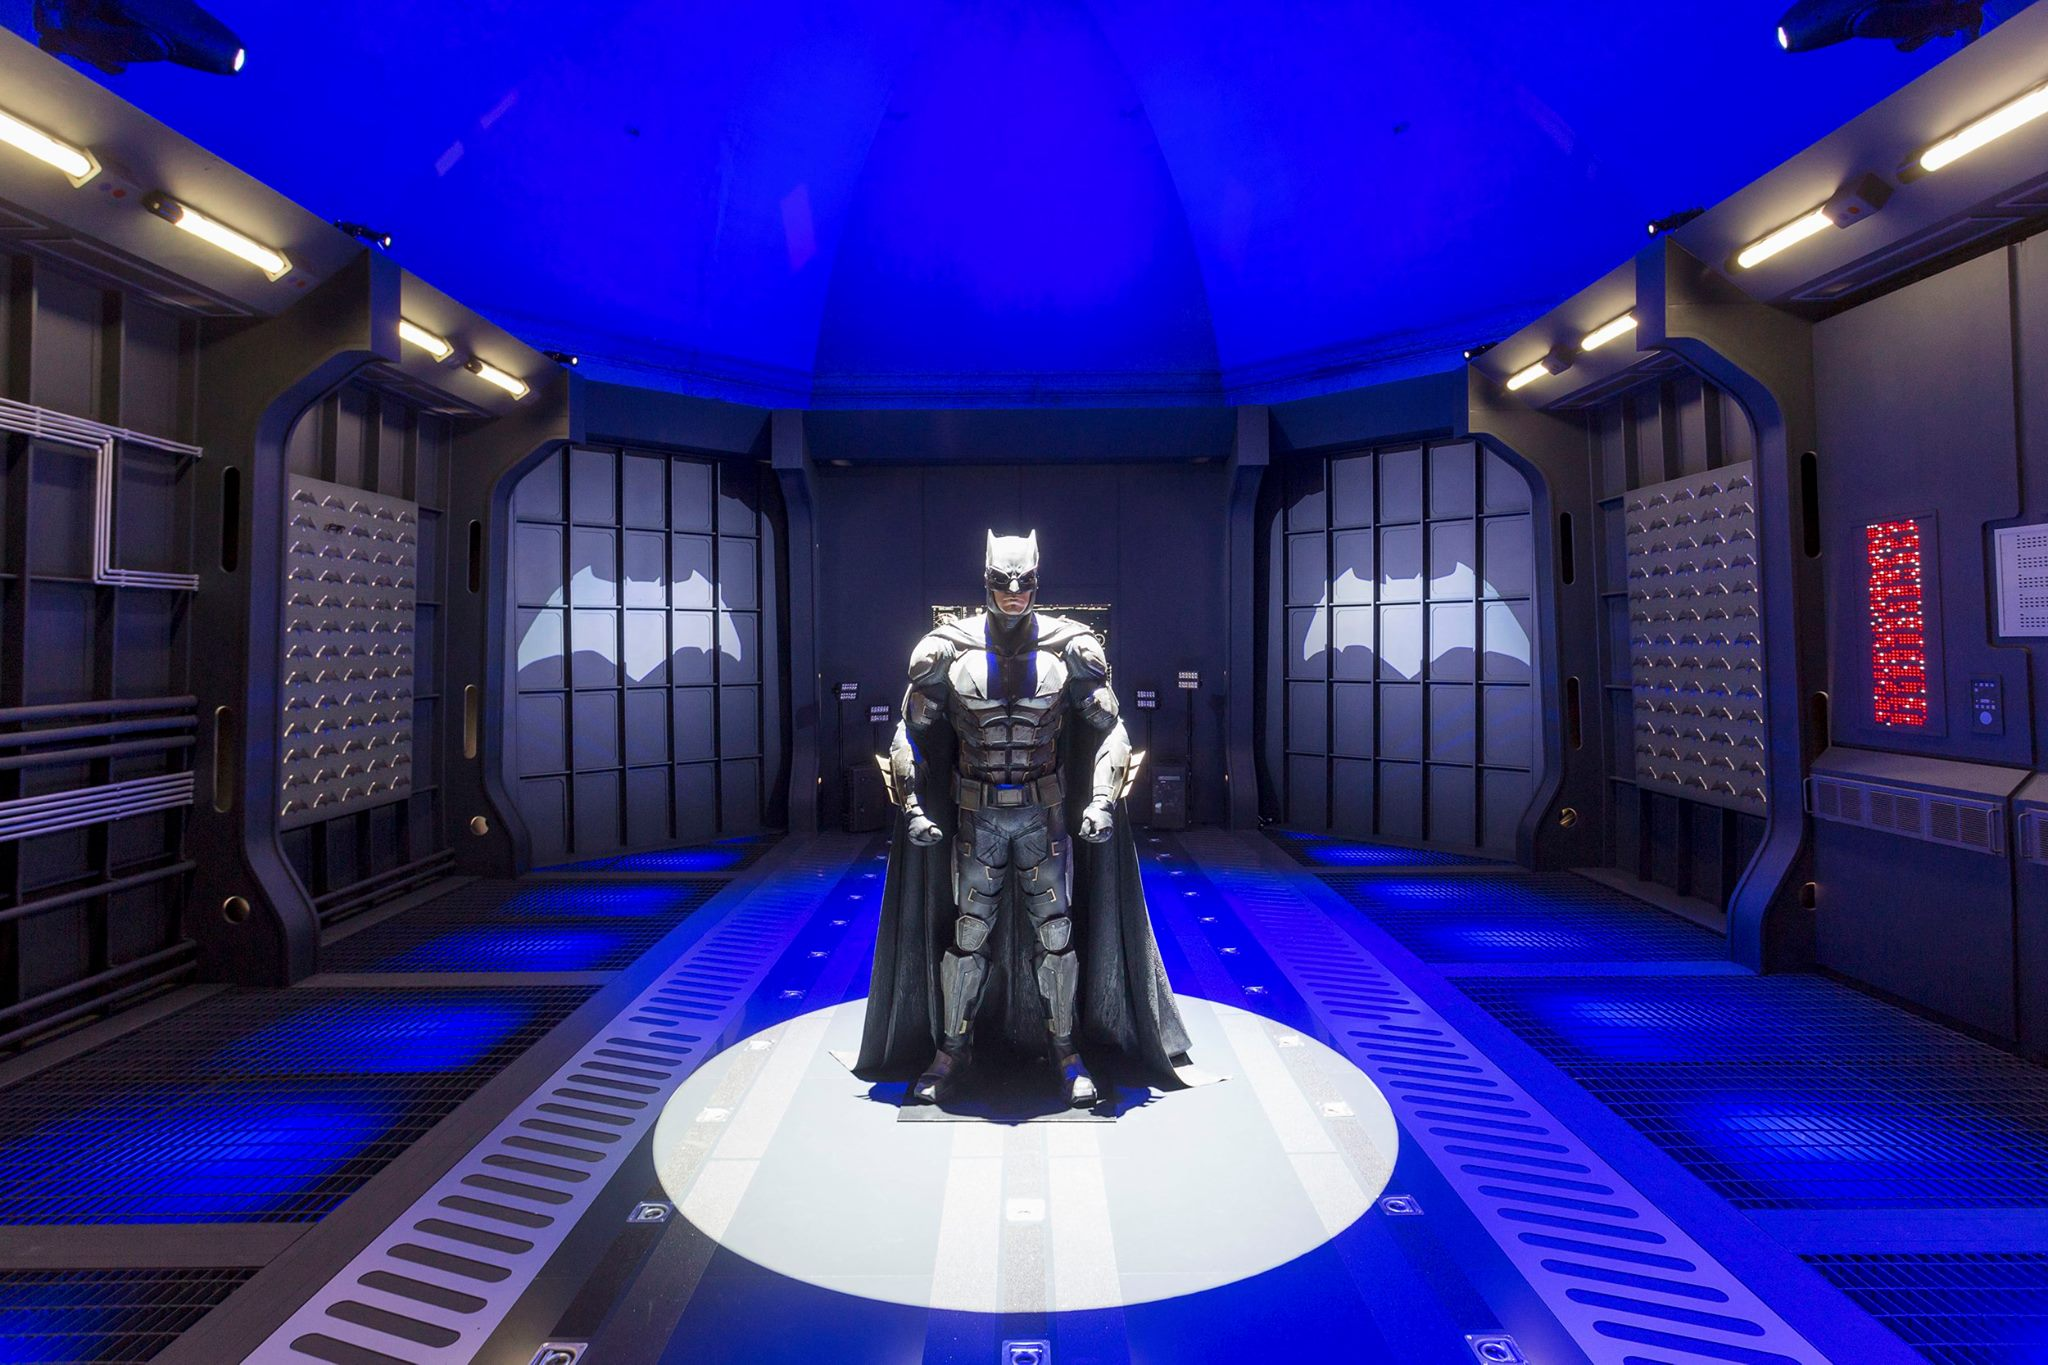 Justice League Experience in London